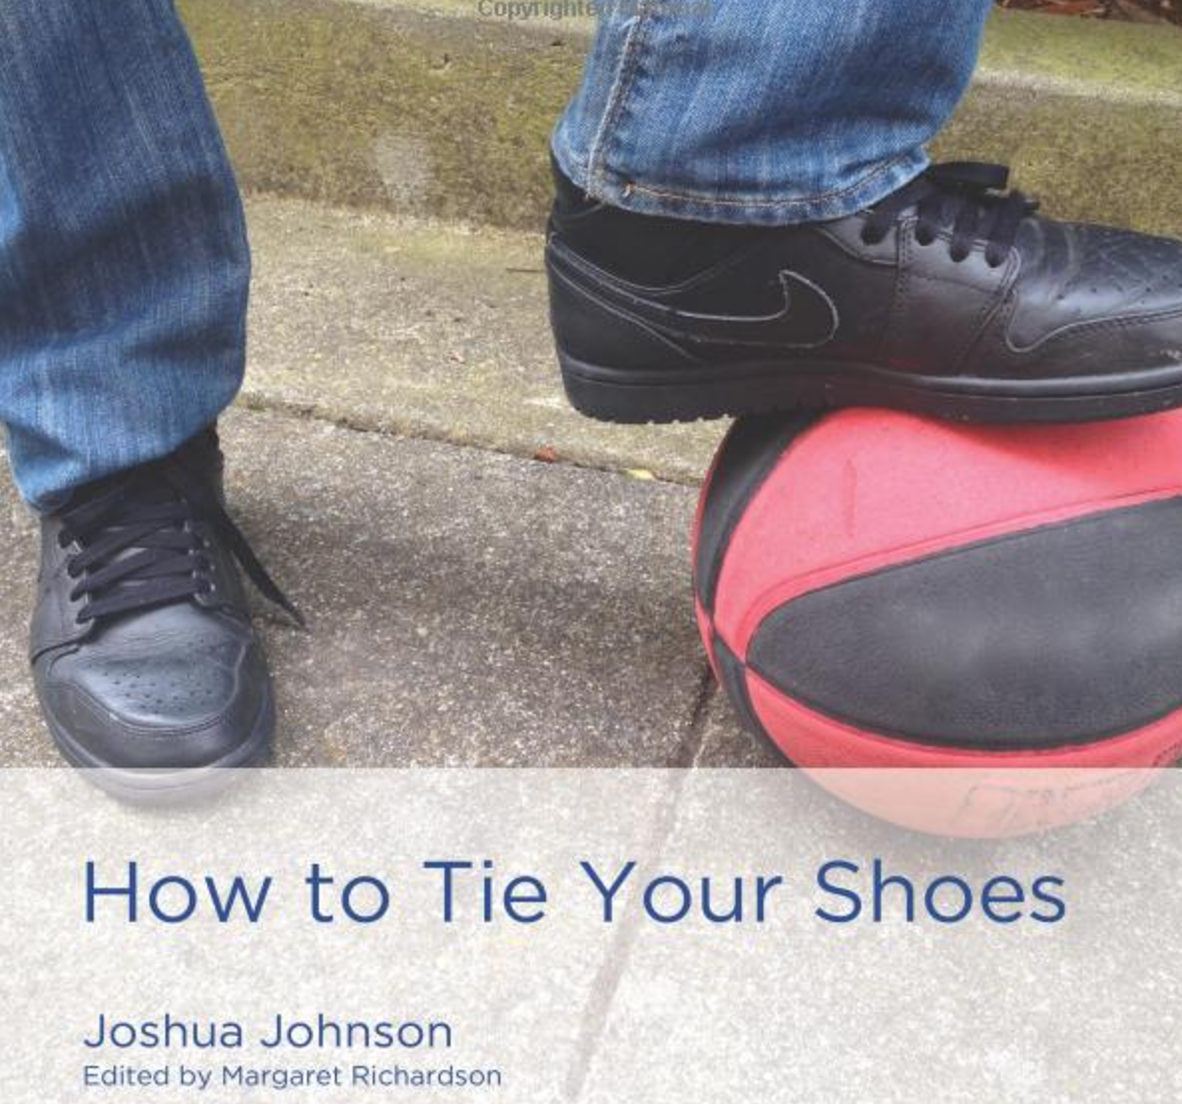 How to Tie Your Shoes   How to Tie Your Shoes introduces the beginning reader to ordinal numbers and offers step-by-step instructions on how to tie your shoes.  Buy this book.